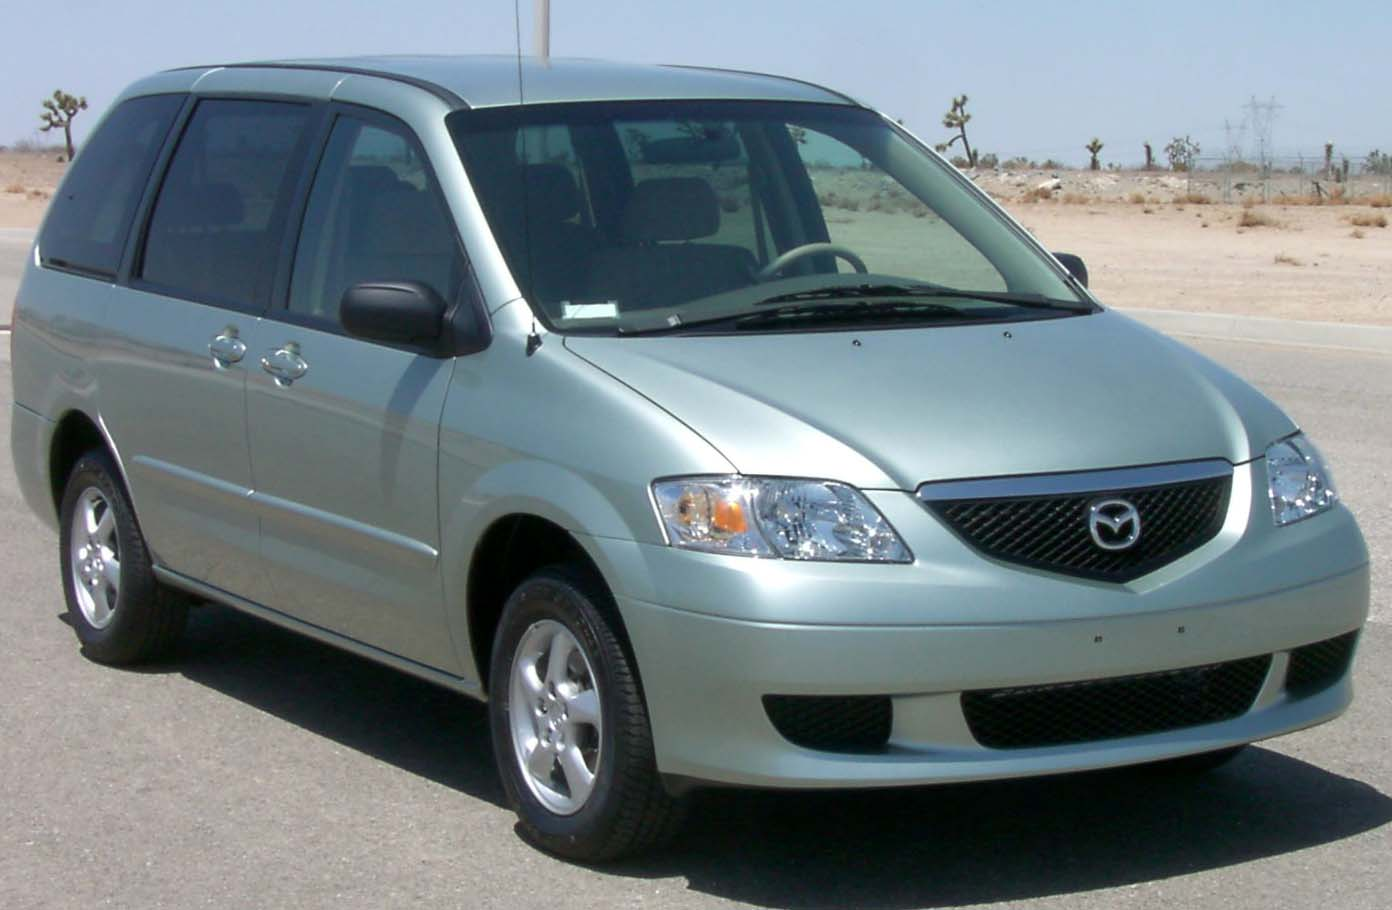 Mazda Mpv 2002 Review Amazing Pictures And Images Look